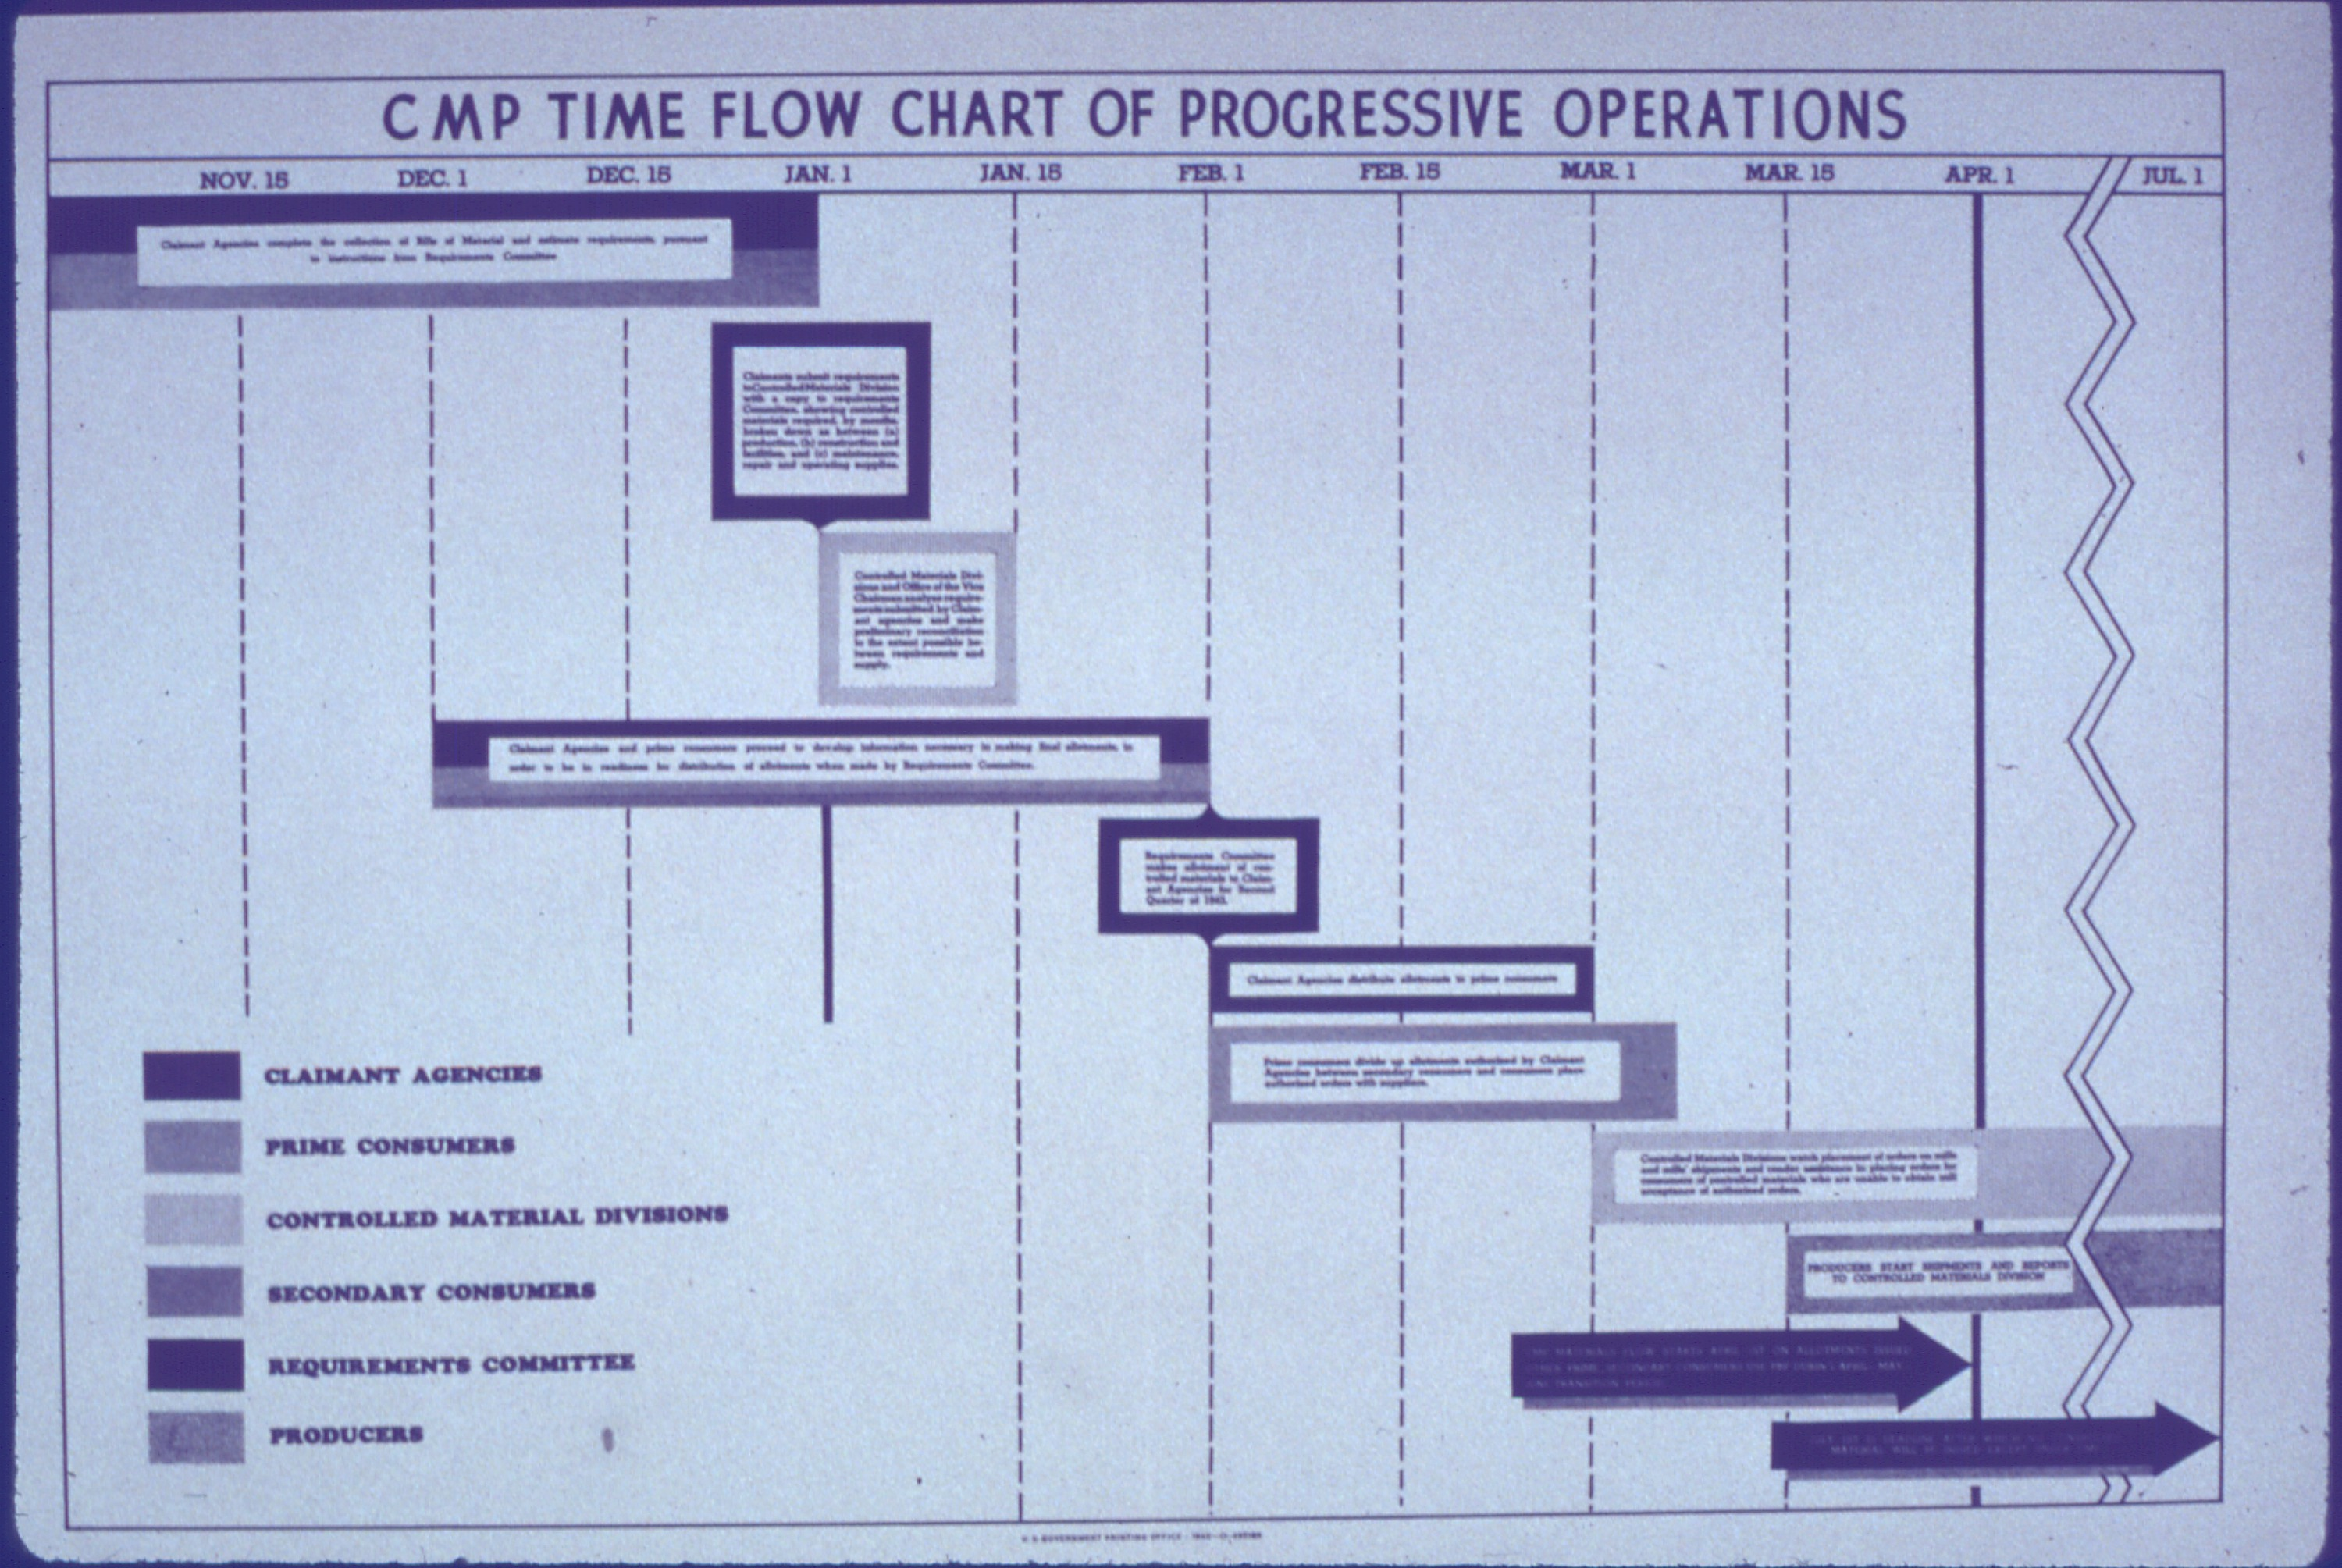 Flow Chart In Google Docs: CMP Time Flow Chart - NARA - 514066.jpg - Wikimedia Commons,Chart